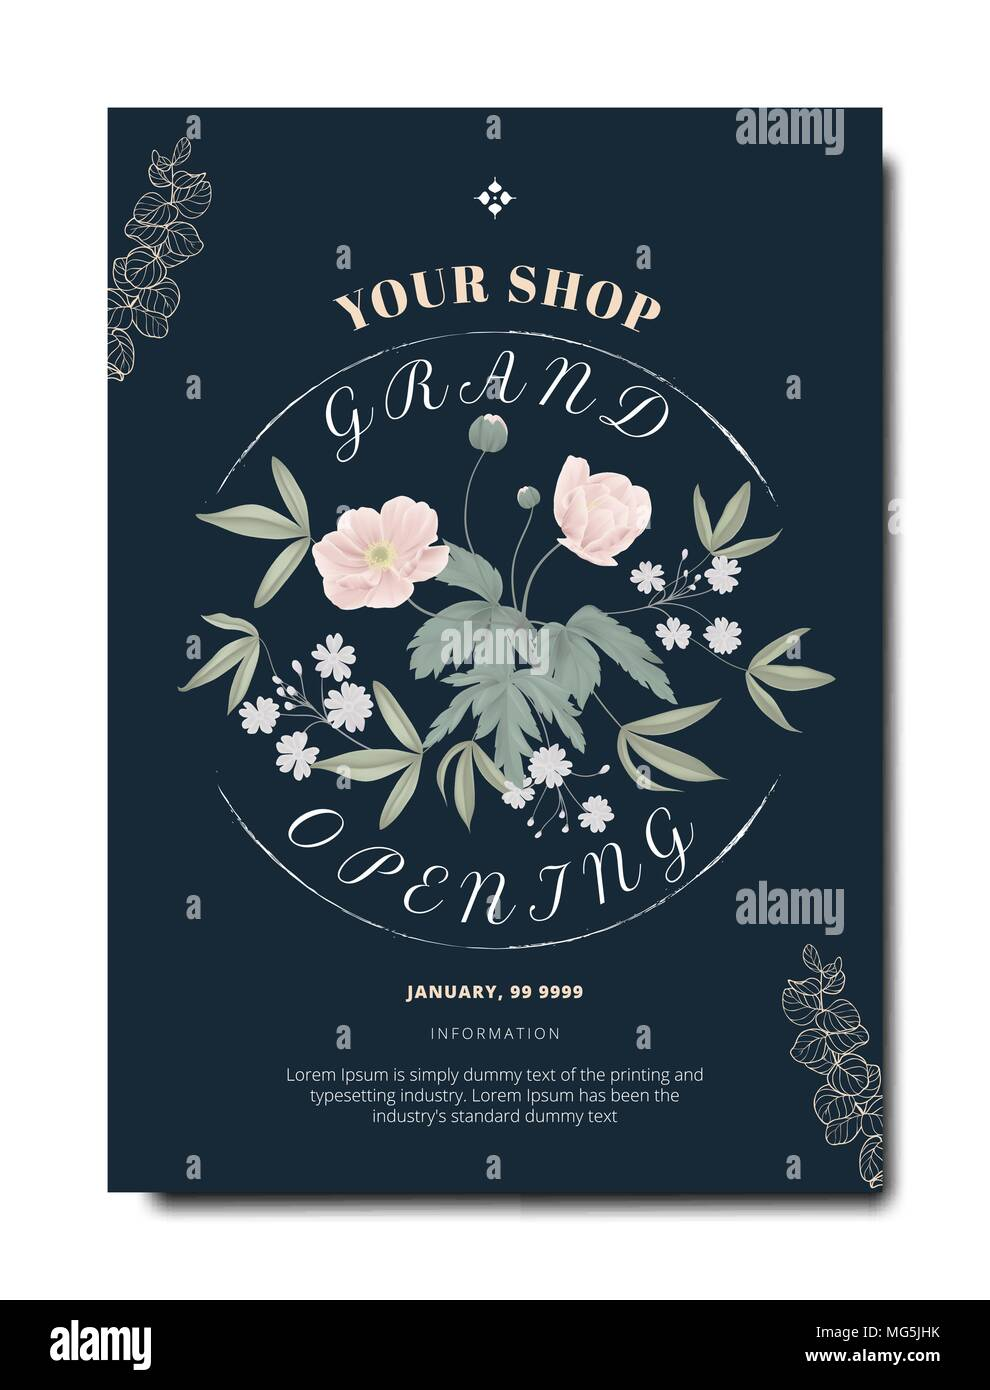 Botanical grand opening invitation card template design pink botanical grand opening invitation card template design pink anemone flowers with leaves on dark blue background vintage style stopboris Gallery